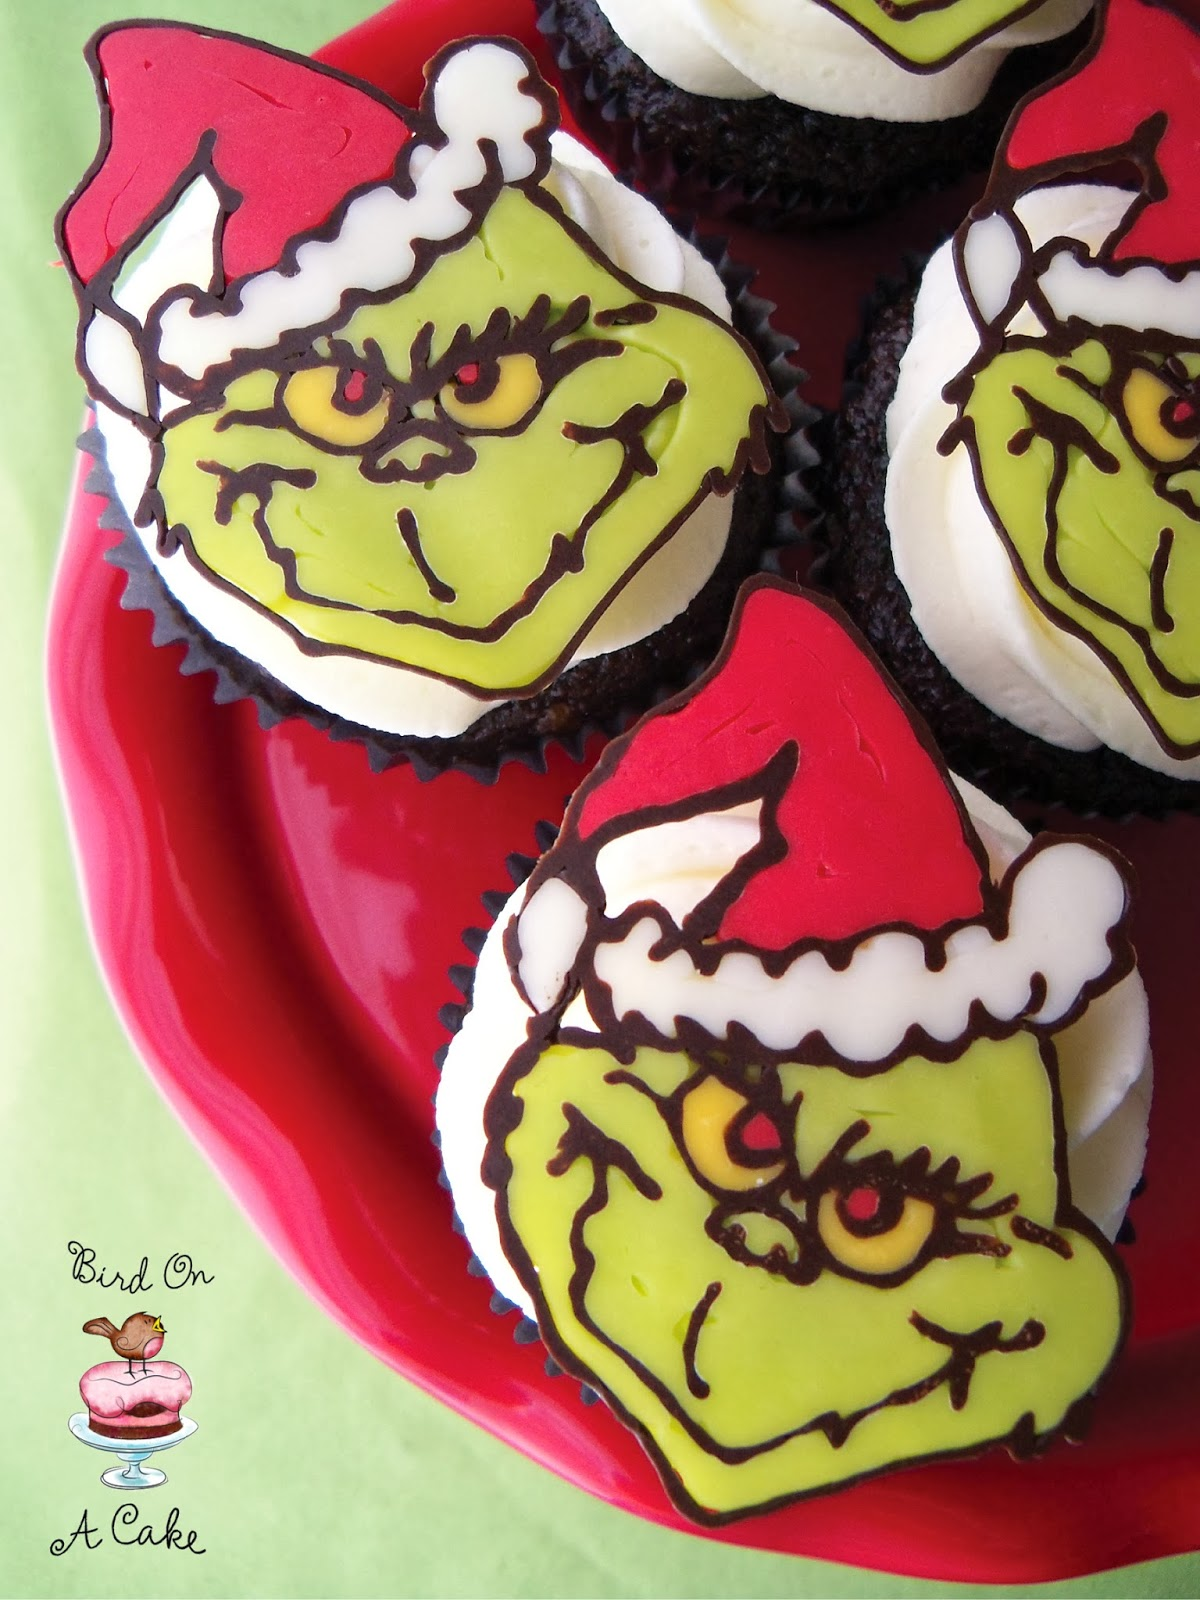 Bird On A Cake: Grinch Christmas Cupcake Toppers